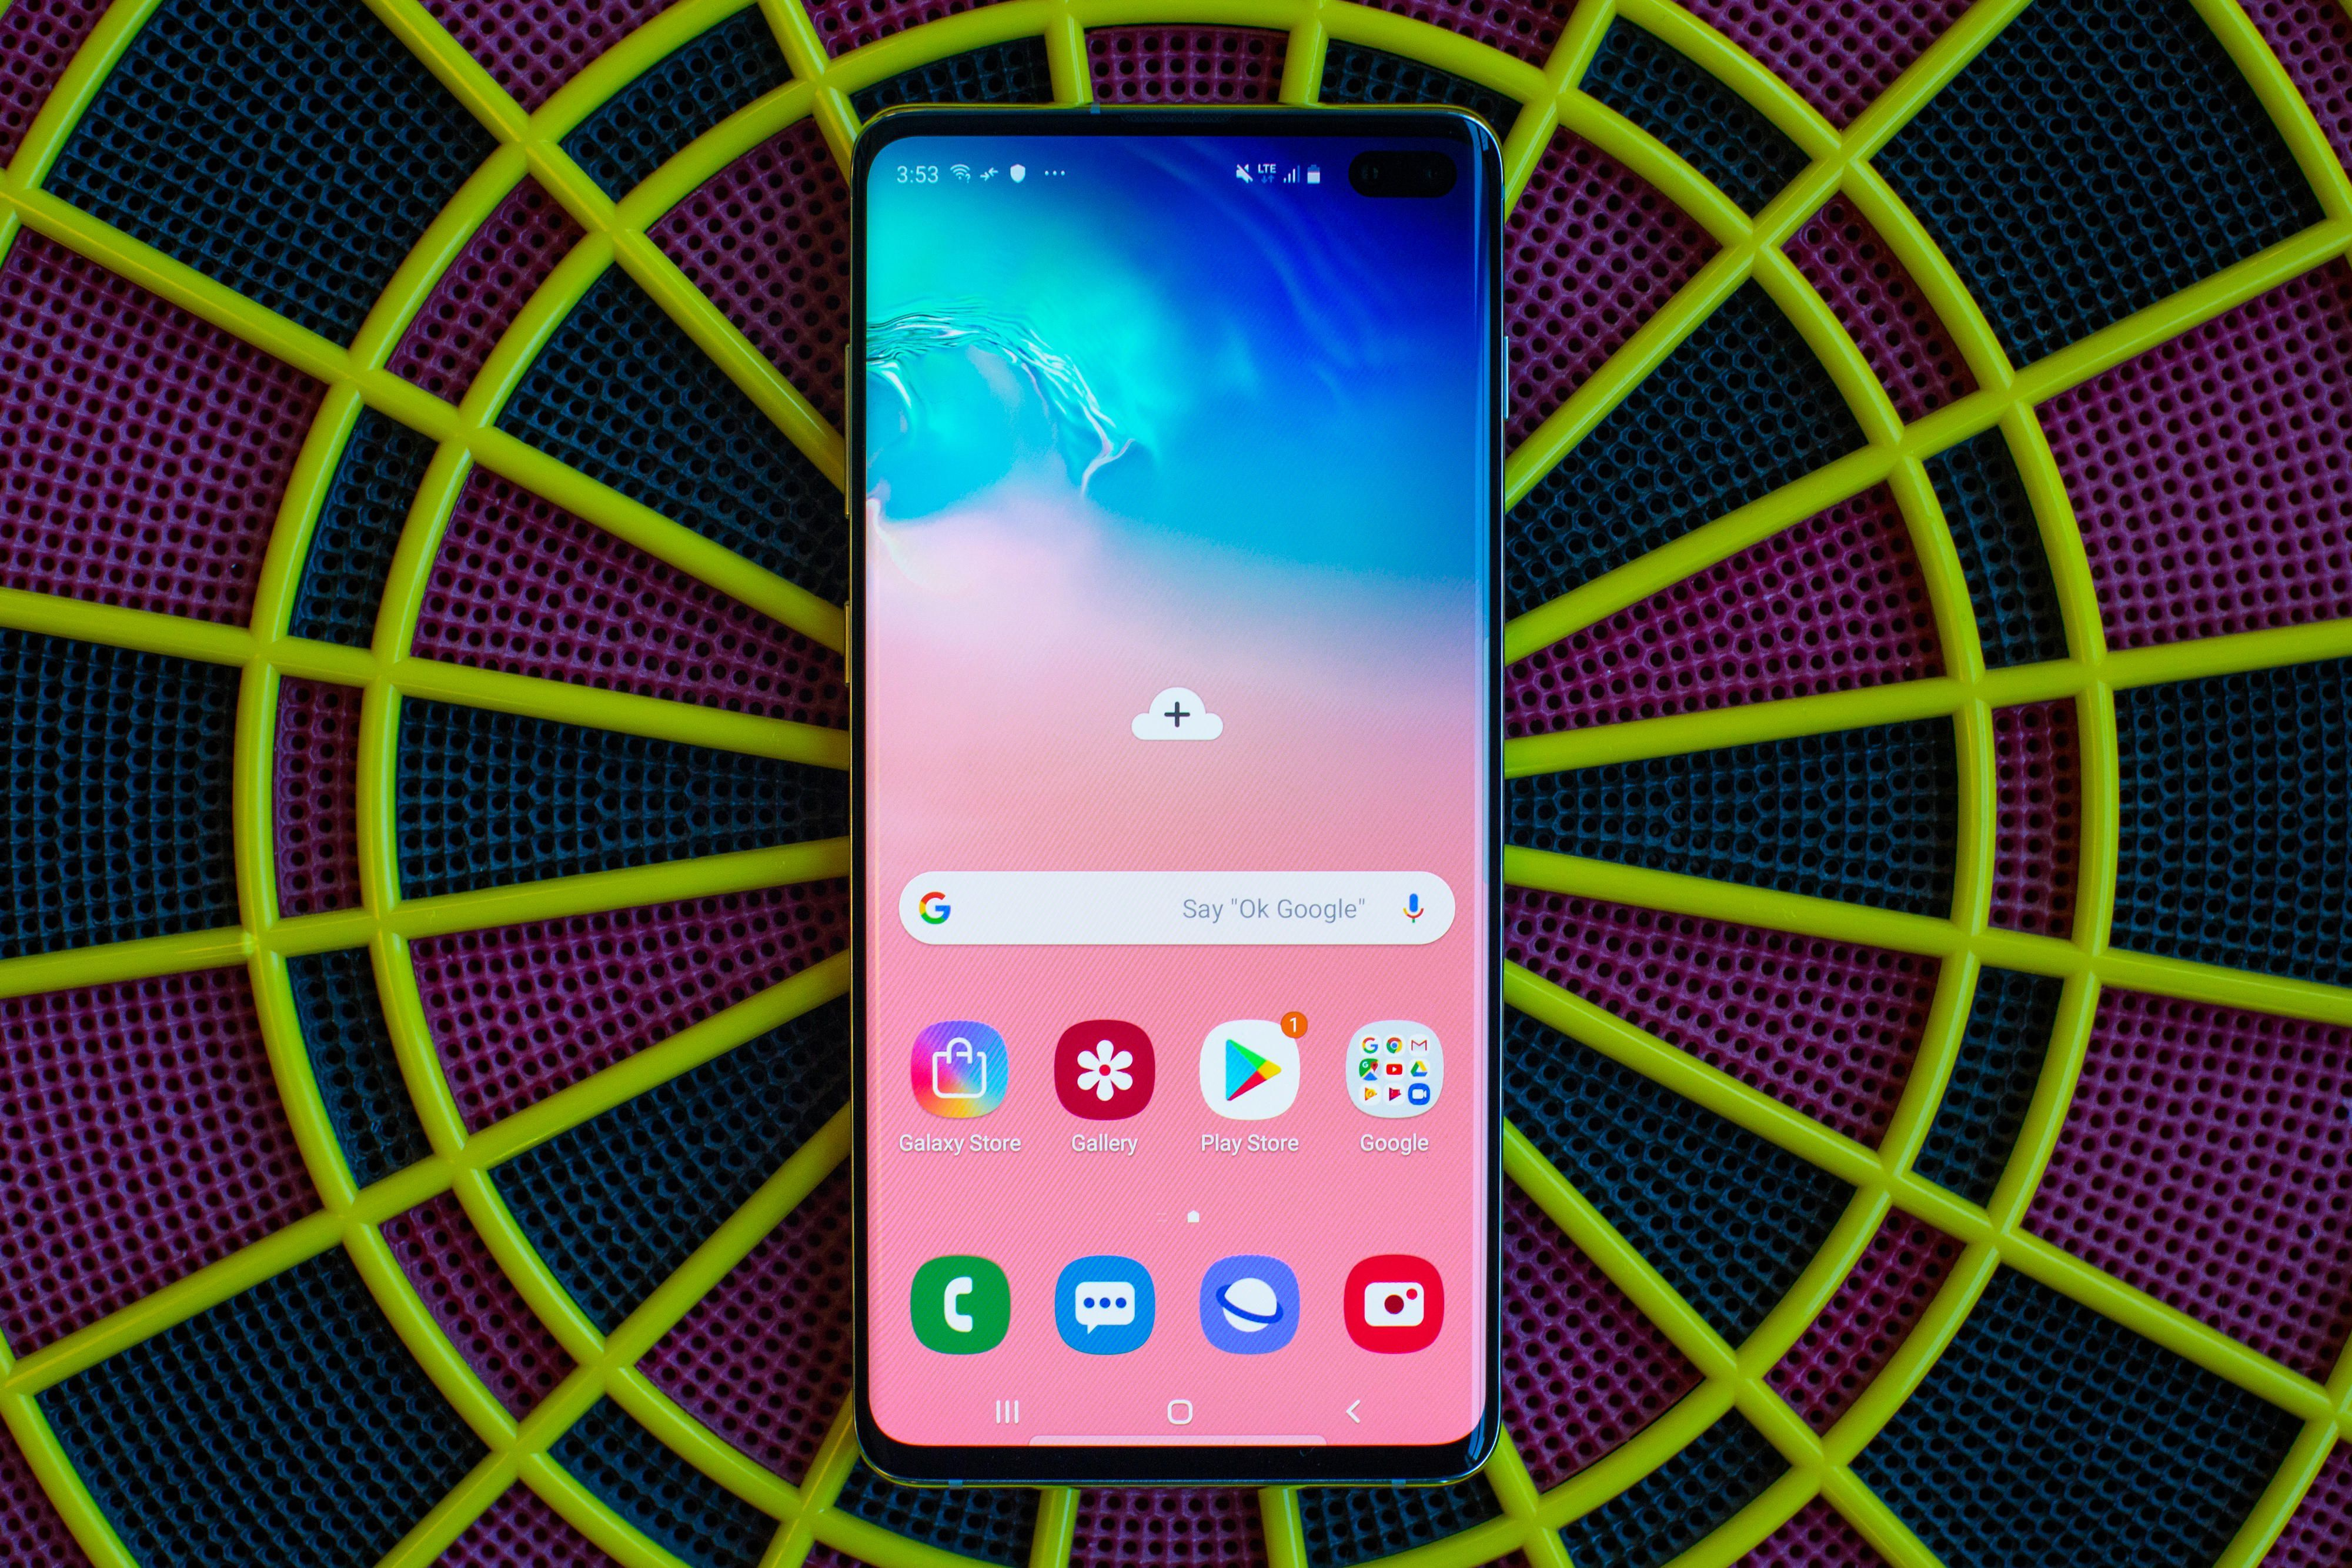 Galaxy S10 Plus Ongoing Review What S Good And Bad Today Samsung Phone Samsung Galaxy Home screen samsung galaxy s10 plus